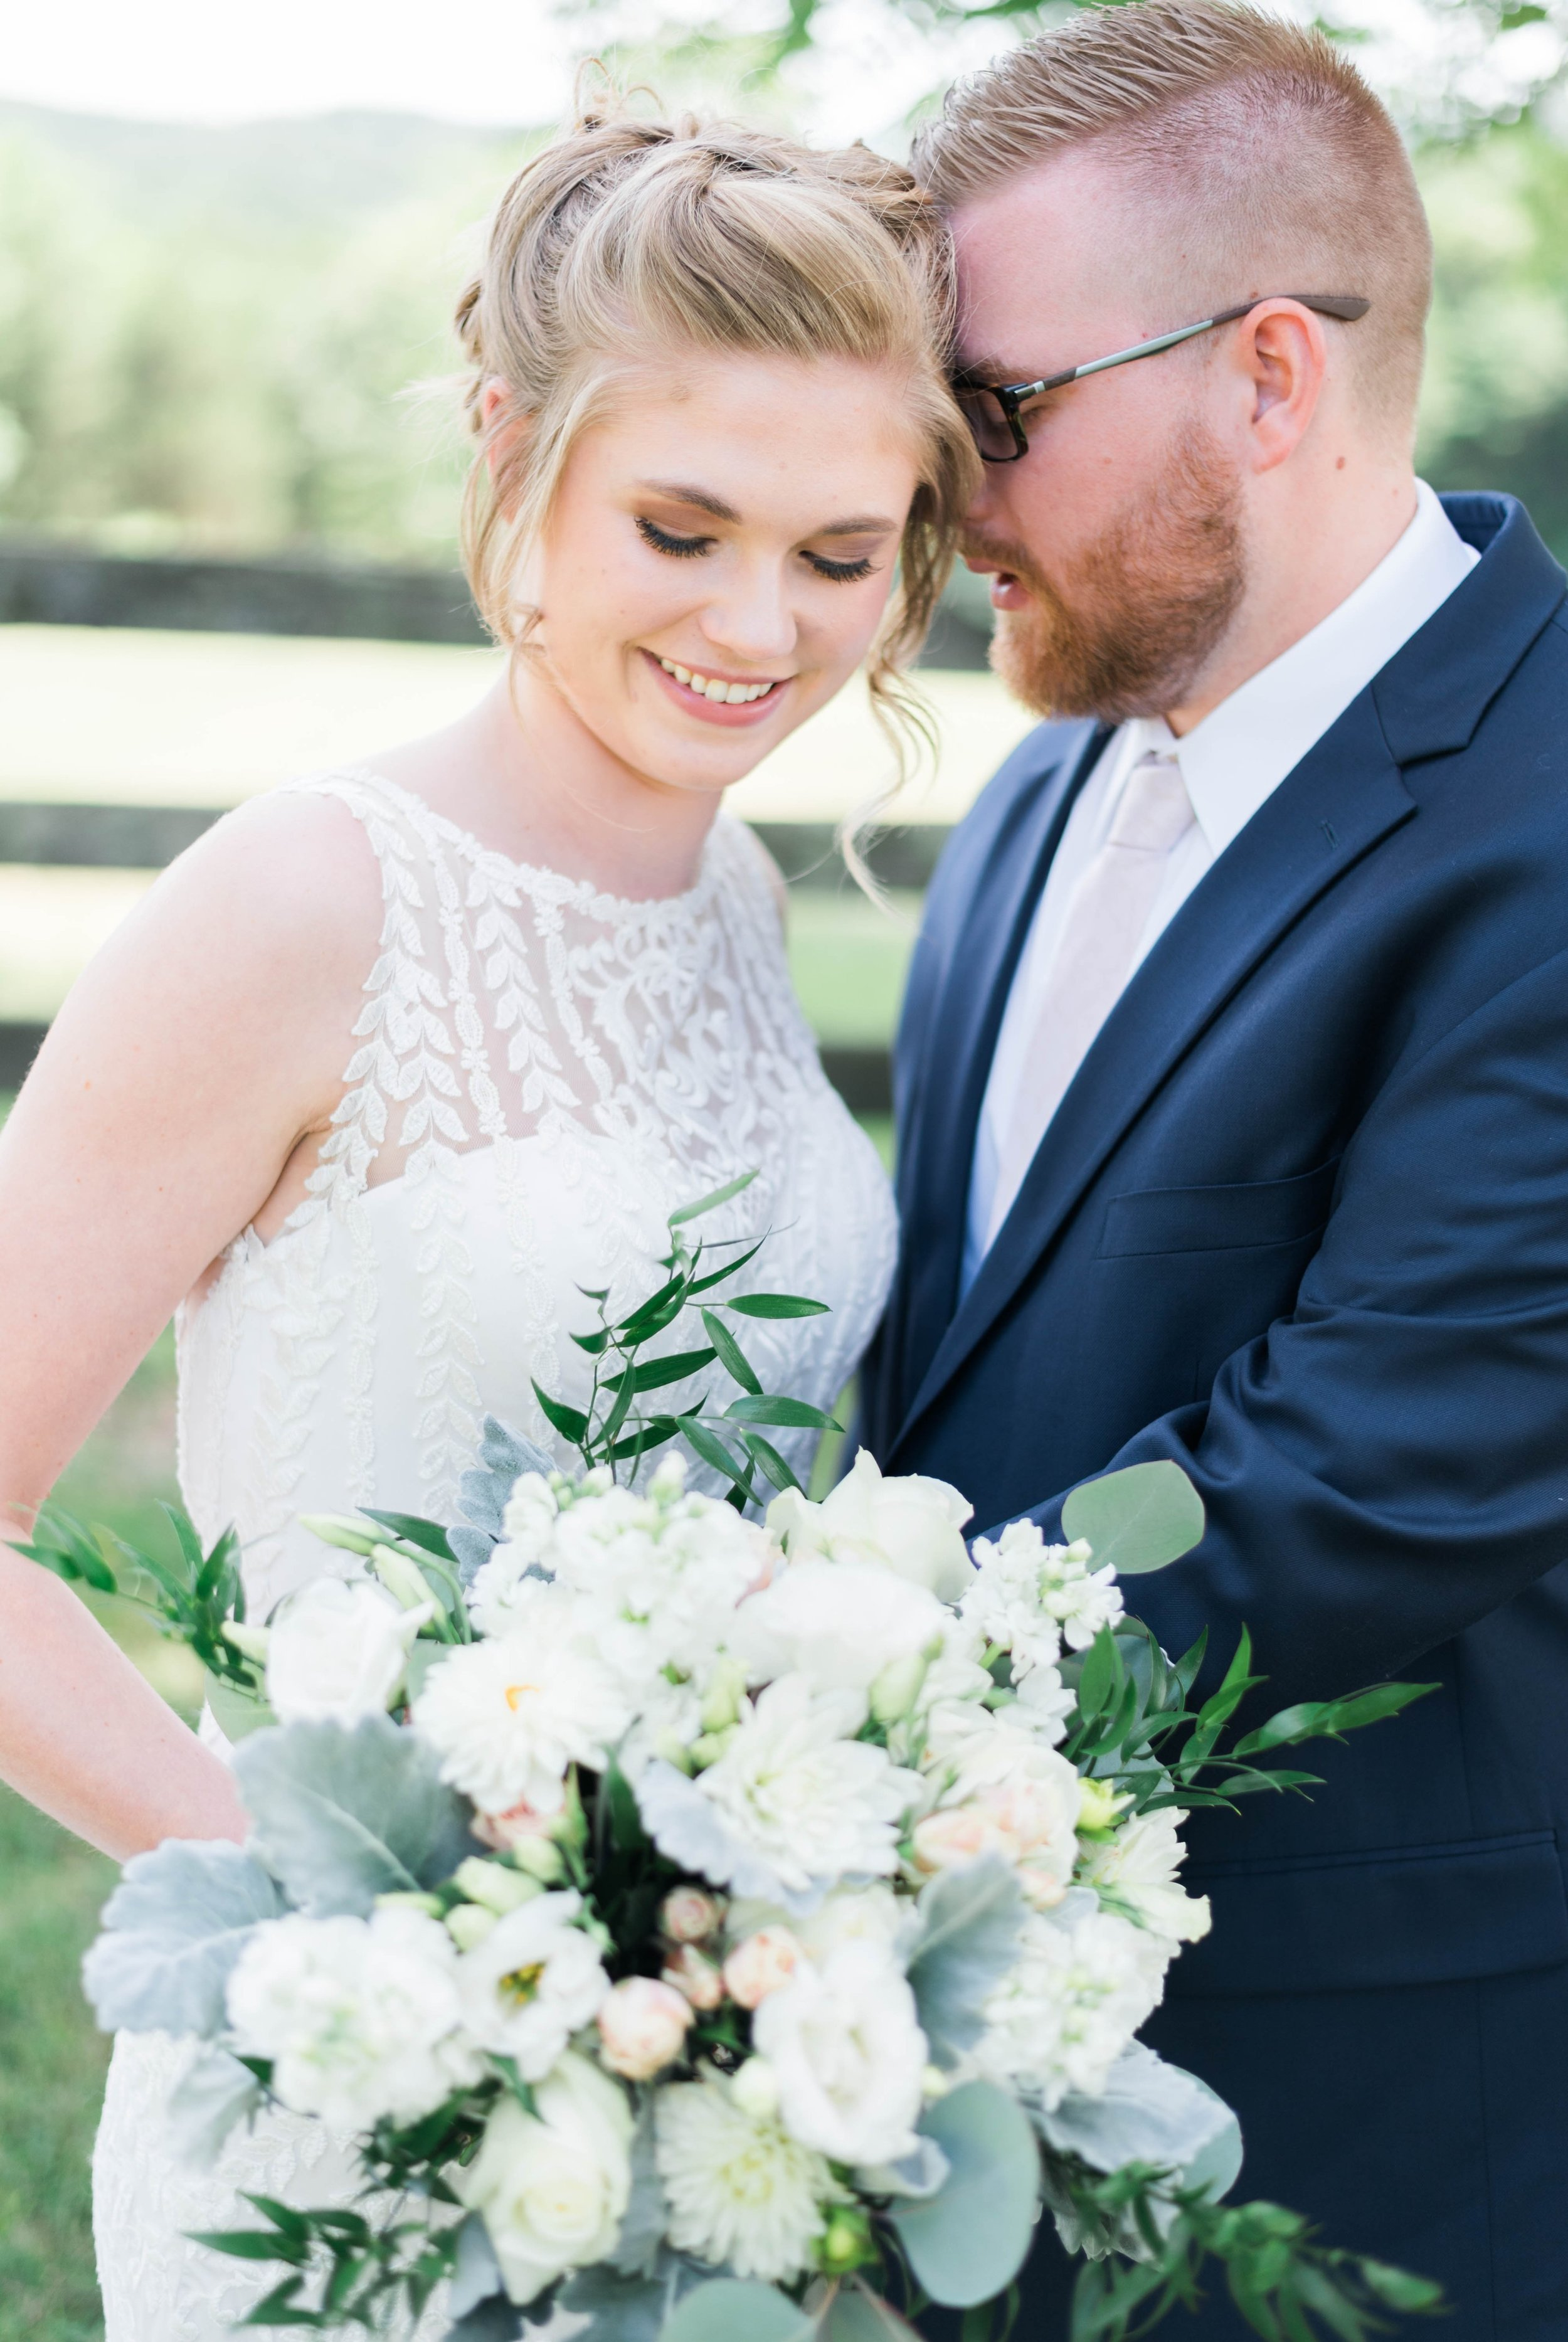 SorellaFarms_VirginiaWeddingPhotographer_BarnWedding_Lynchburgweddingphotographer_DanielleTyler 44.jpg